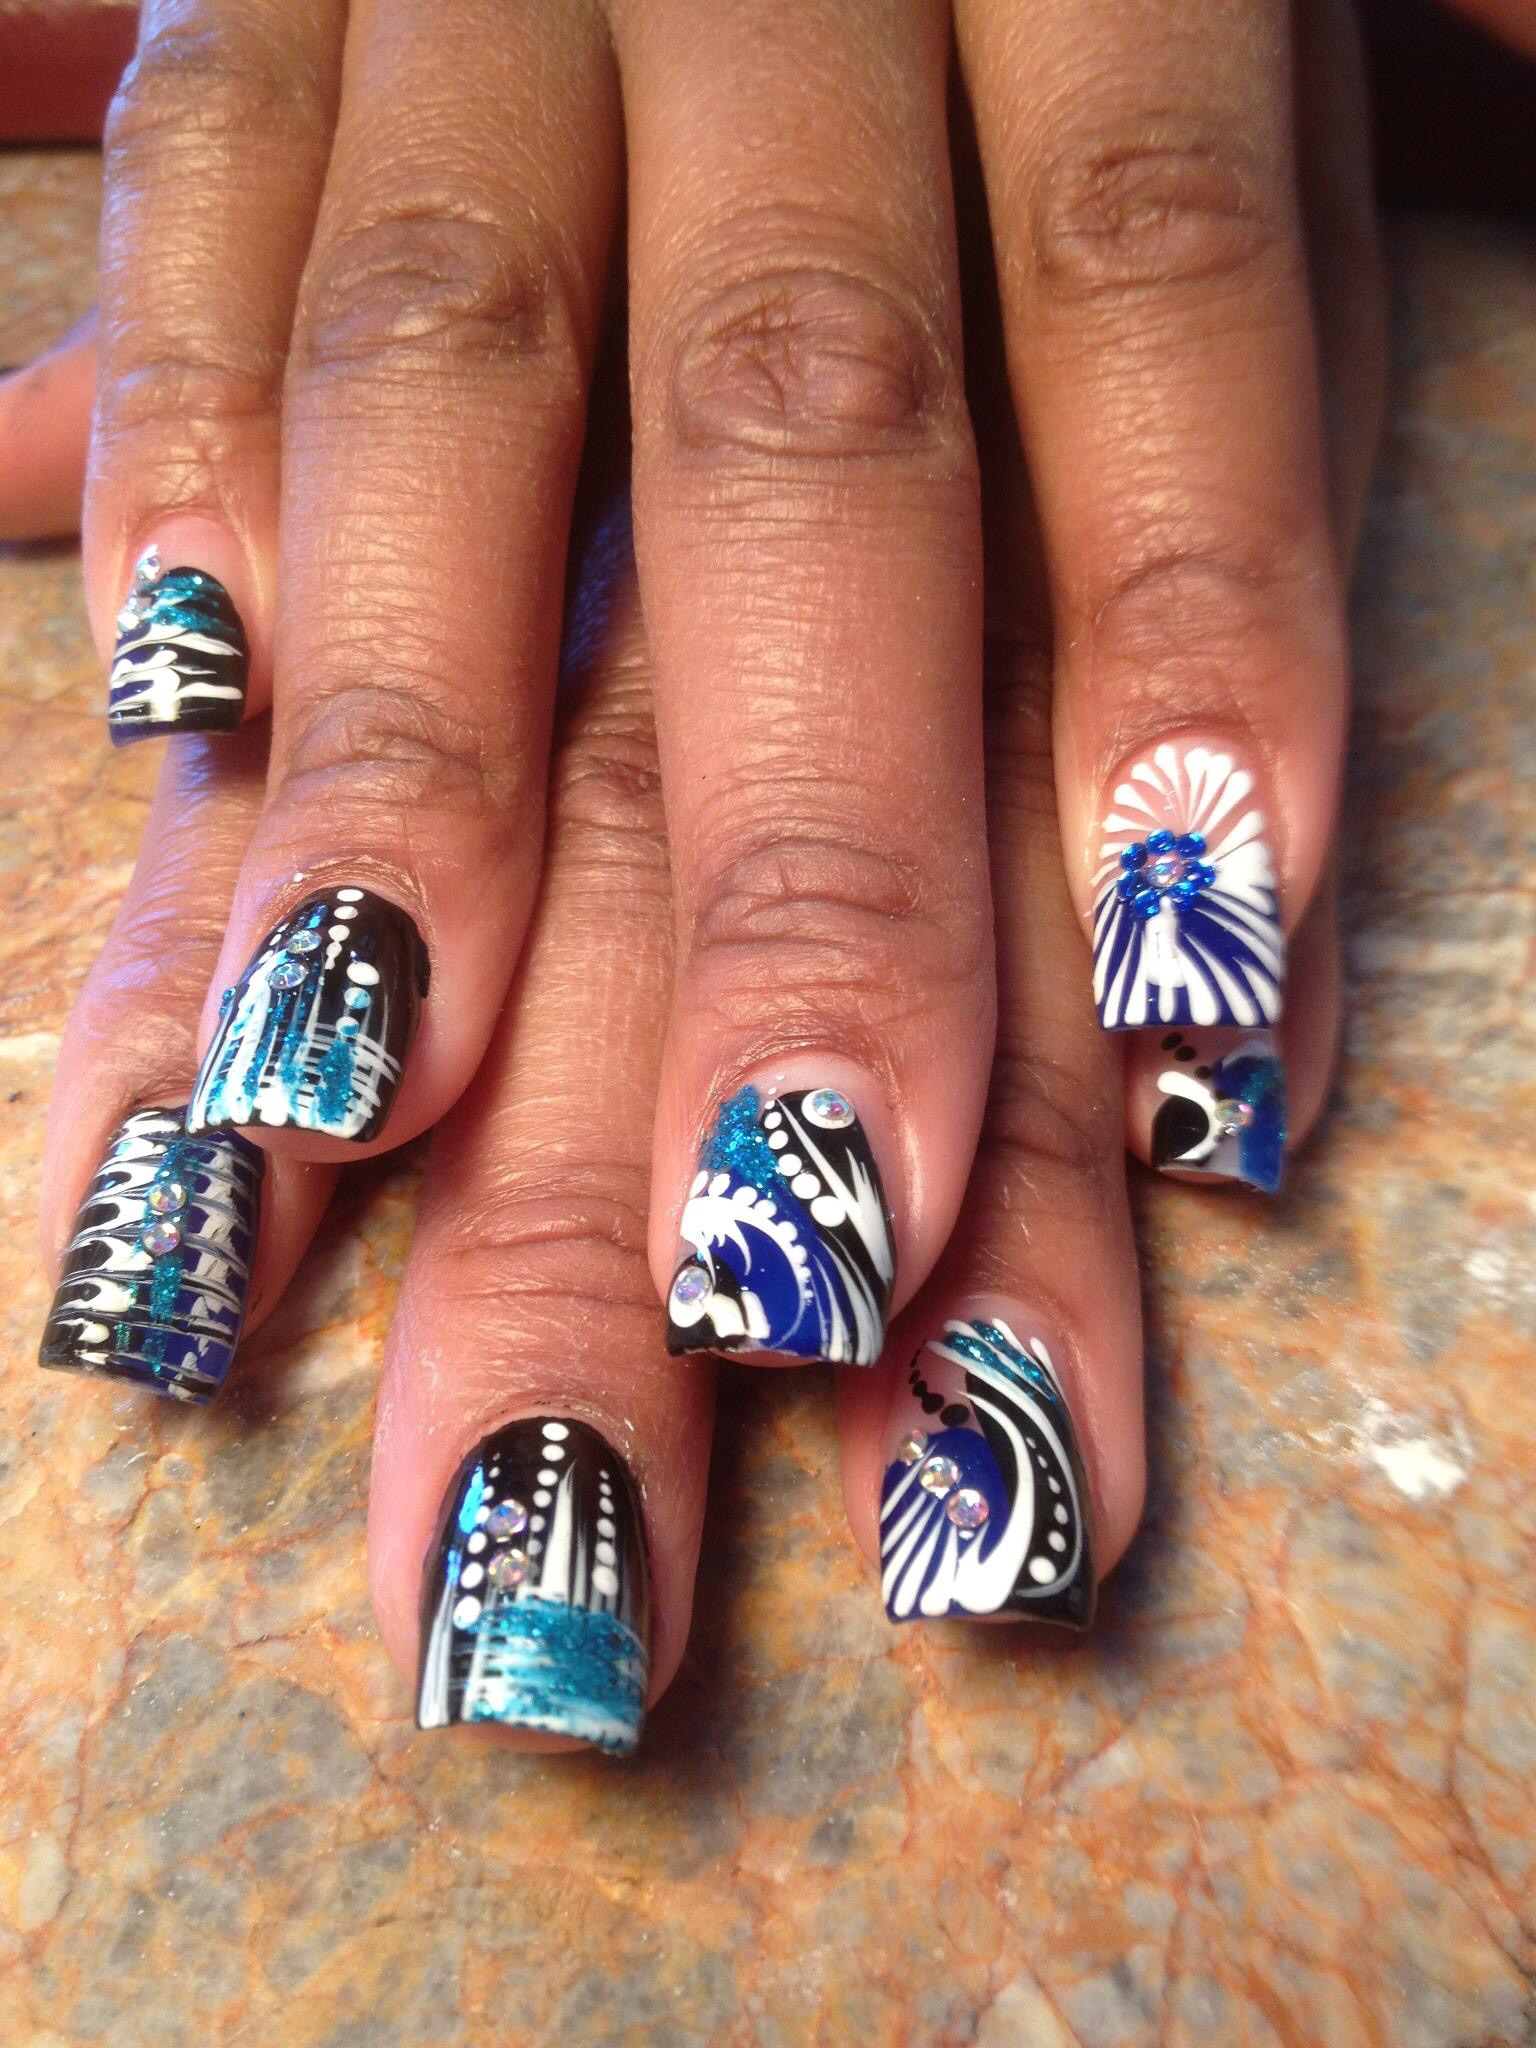 T J\'s Nails 341 W Northfield Dr, Brownsburg, IN 46112 - YP.com